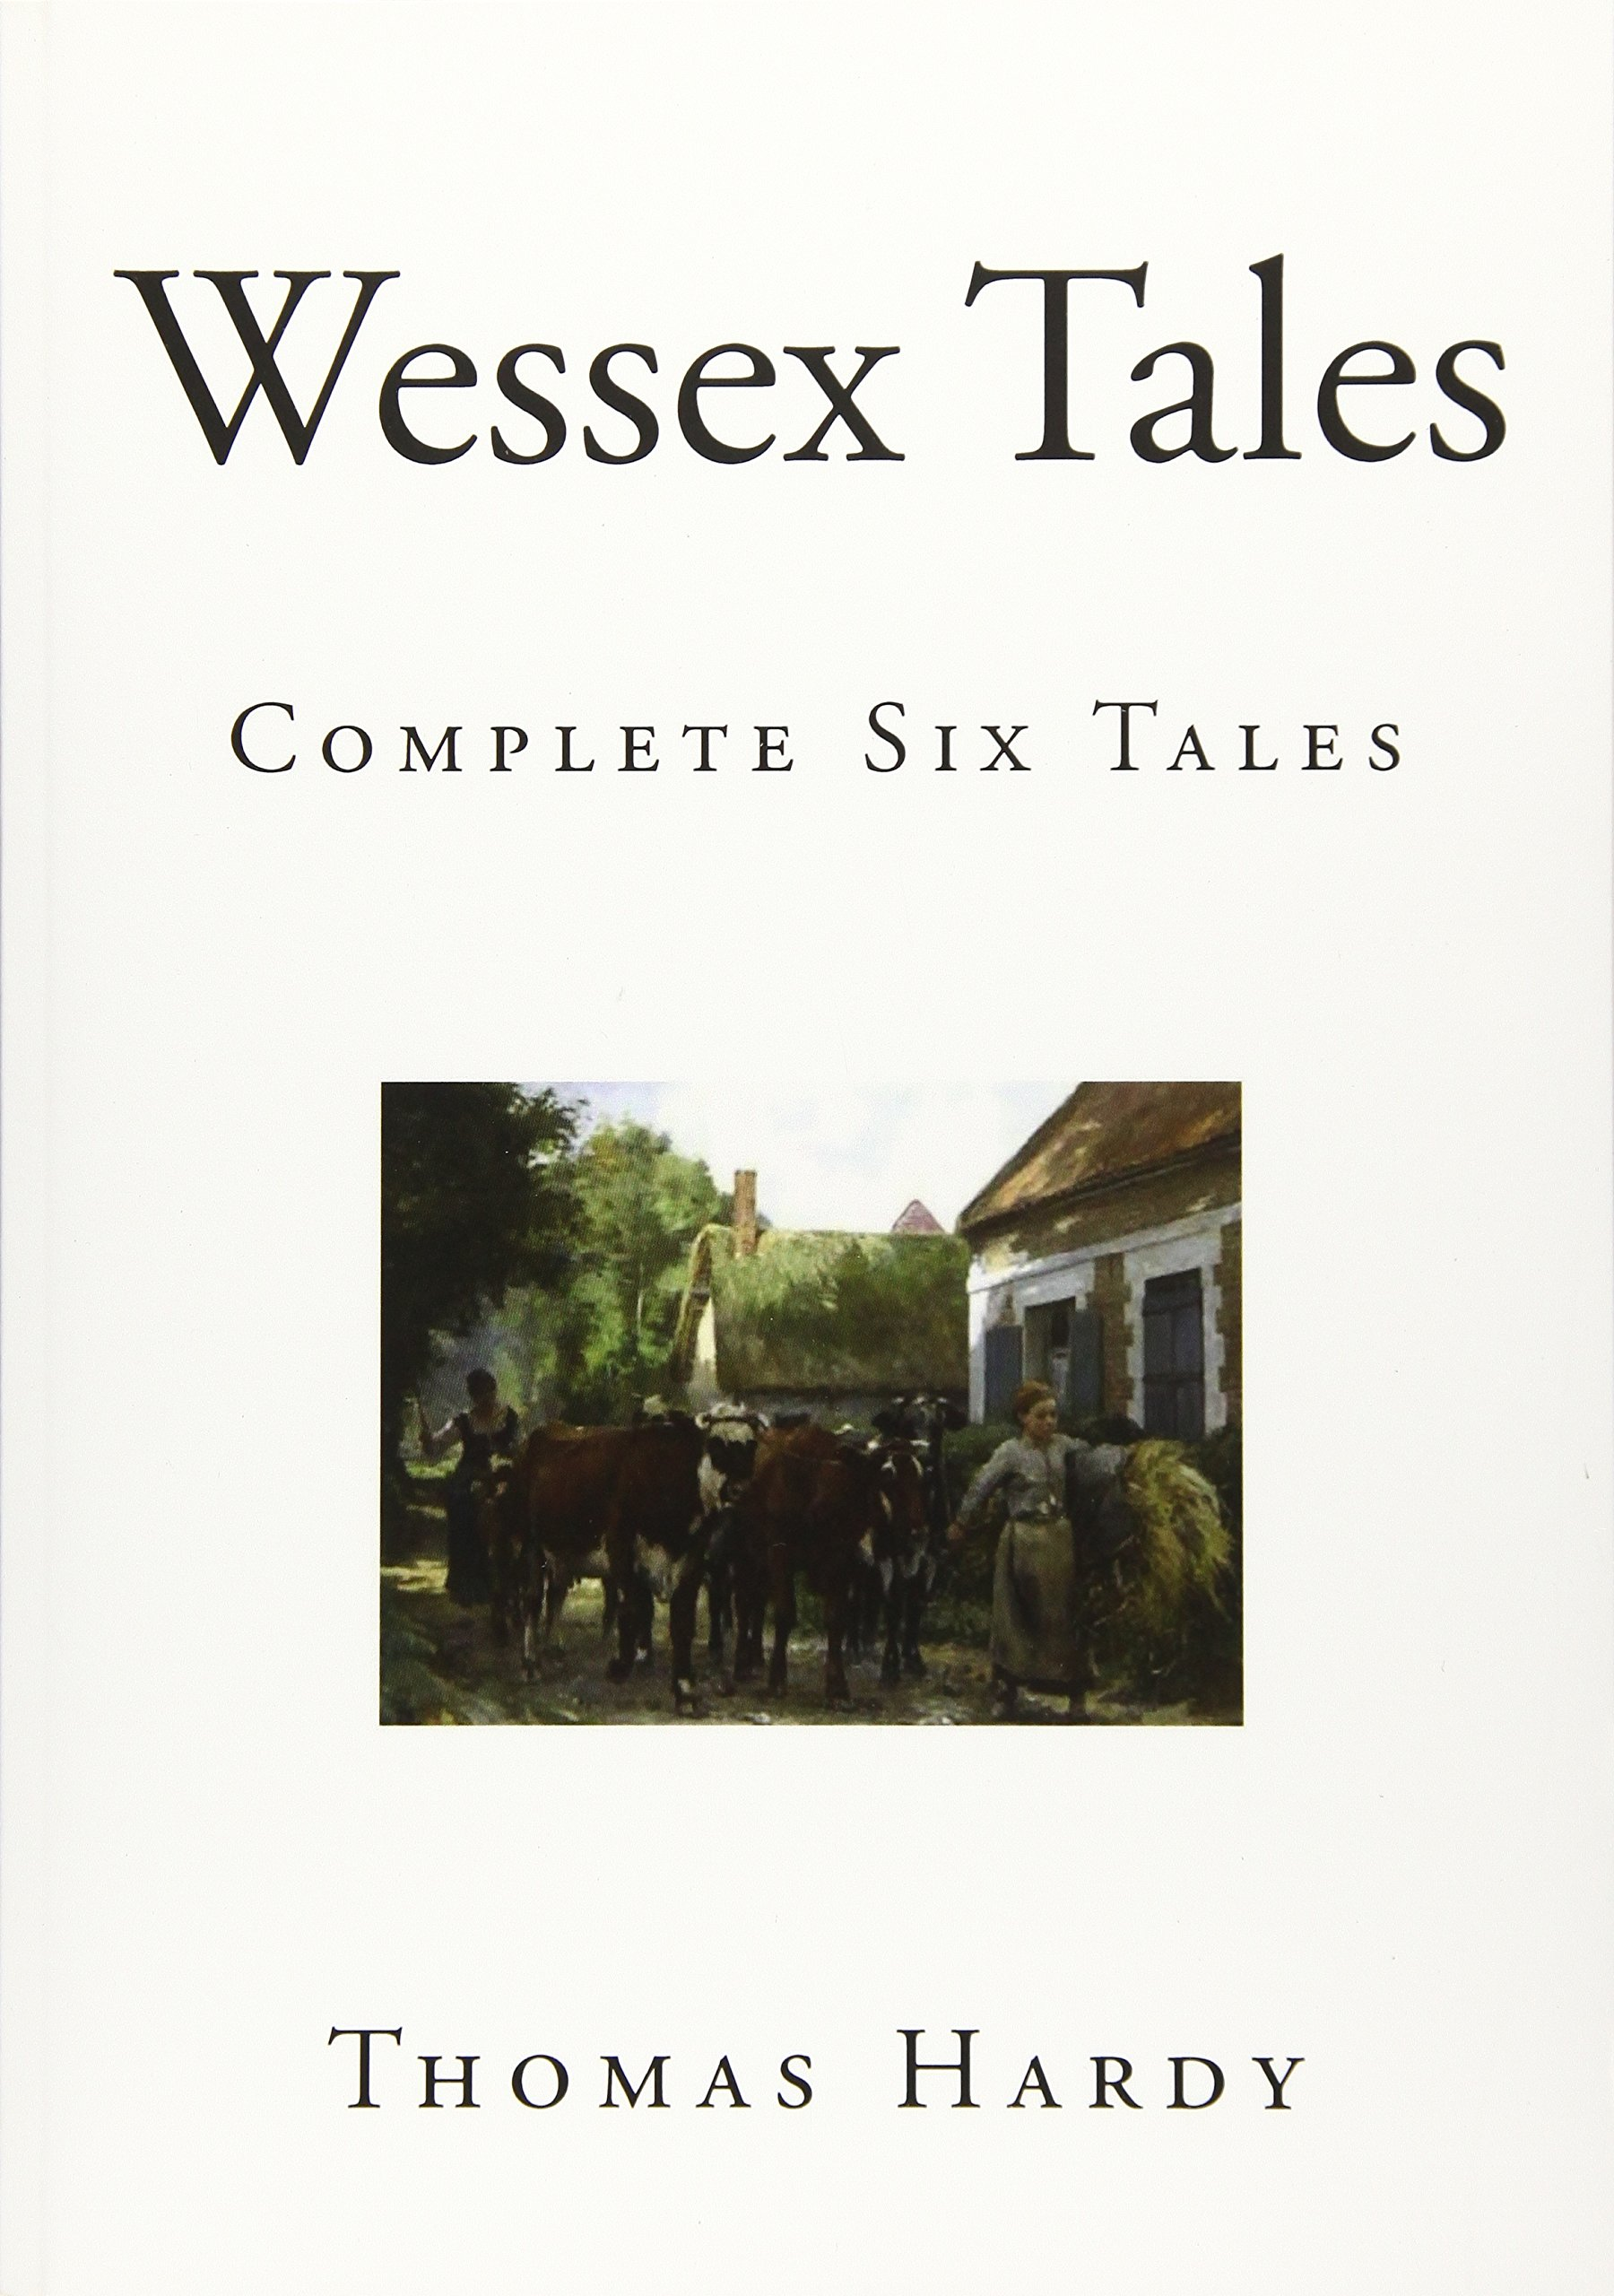 Download Wessex Tales: Complete Six Tales (Classic Thomas Hardy) PDF